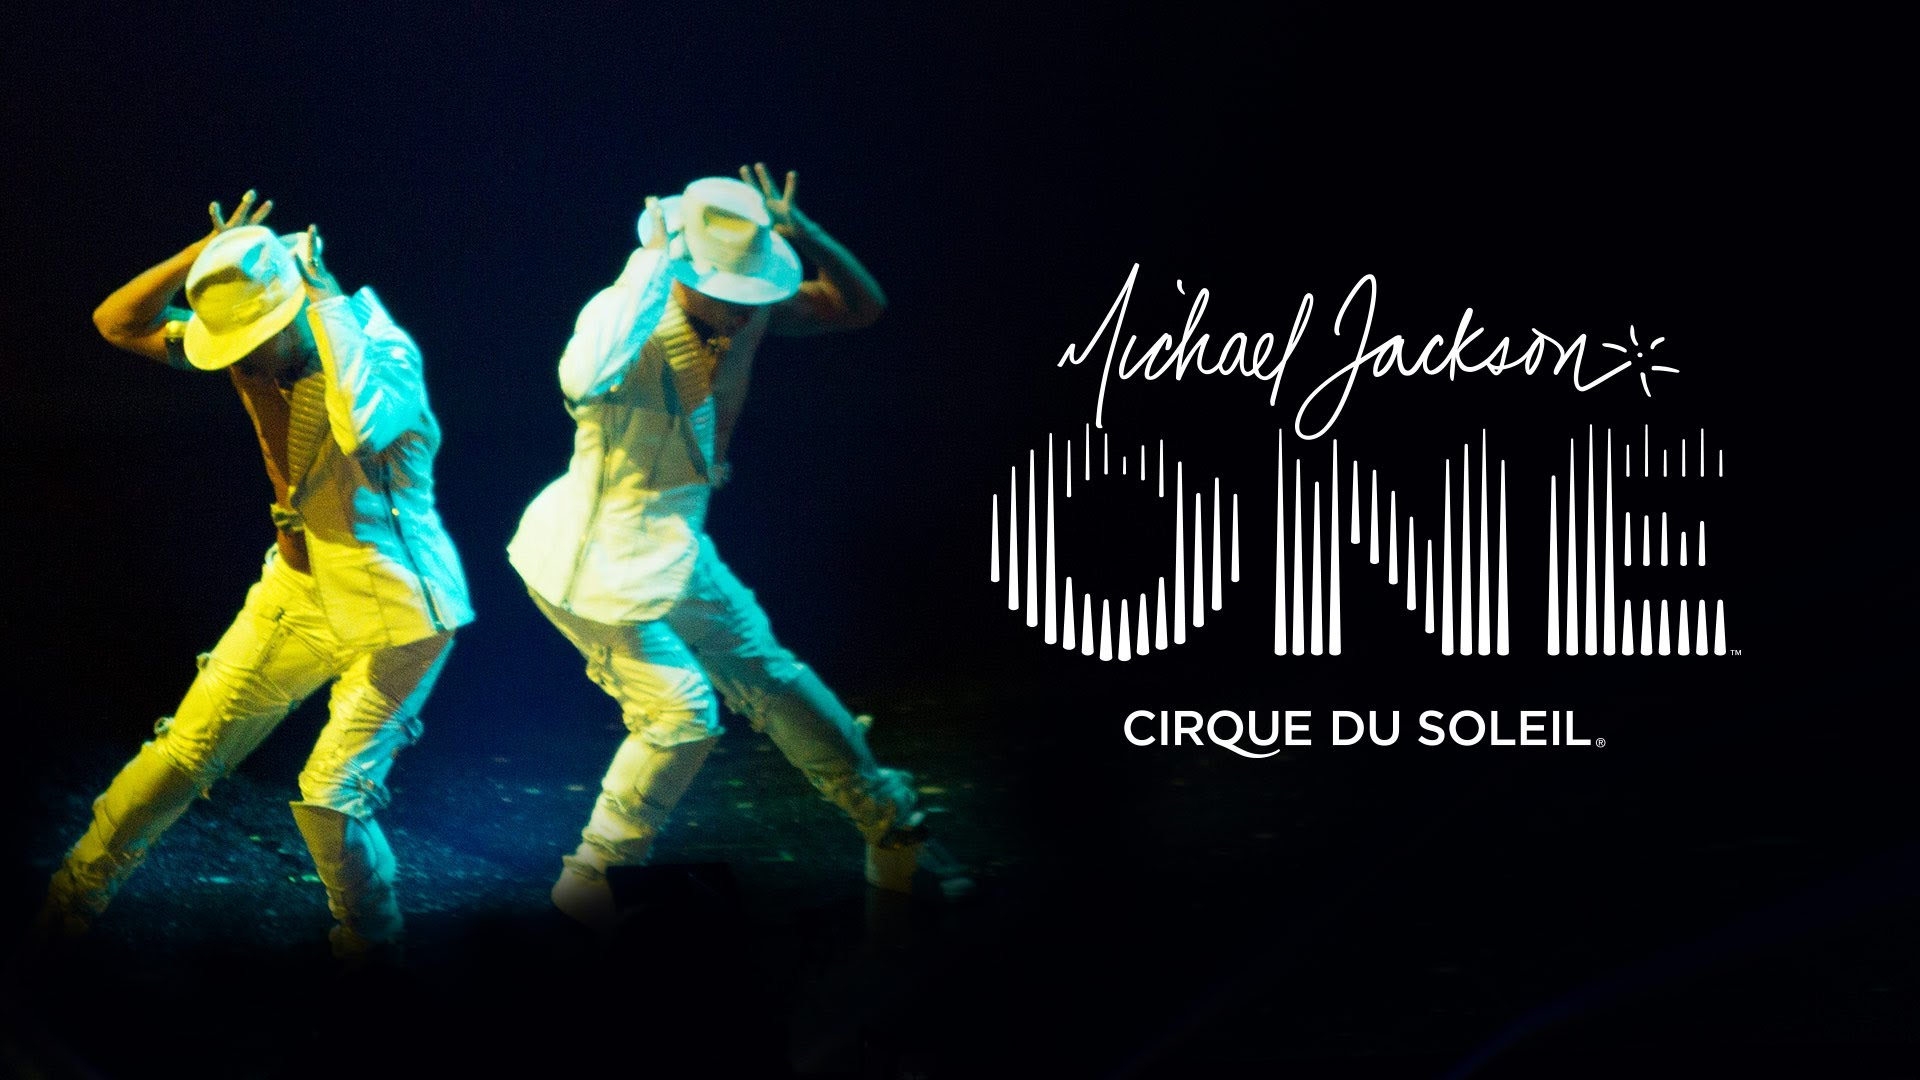 Michael Jackson ONE | Las Vegas Show at Mandalay Bay | Cirque du Soleil